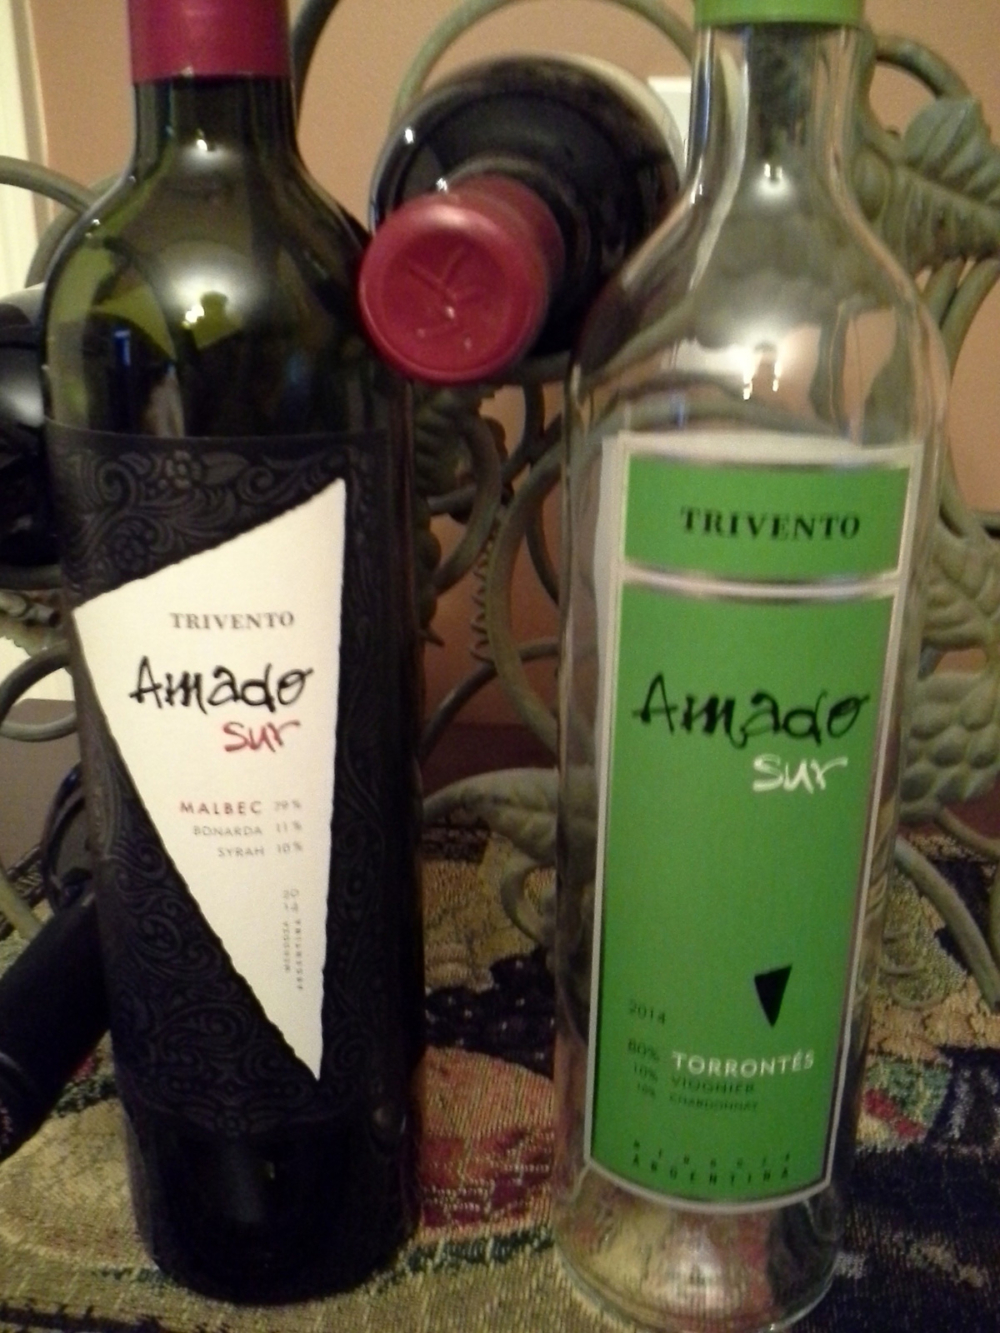 Amado Sur Malbec and Amado Sur Torrontés are a perfect pair for gifting.